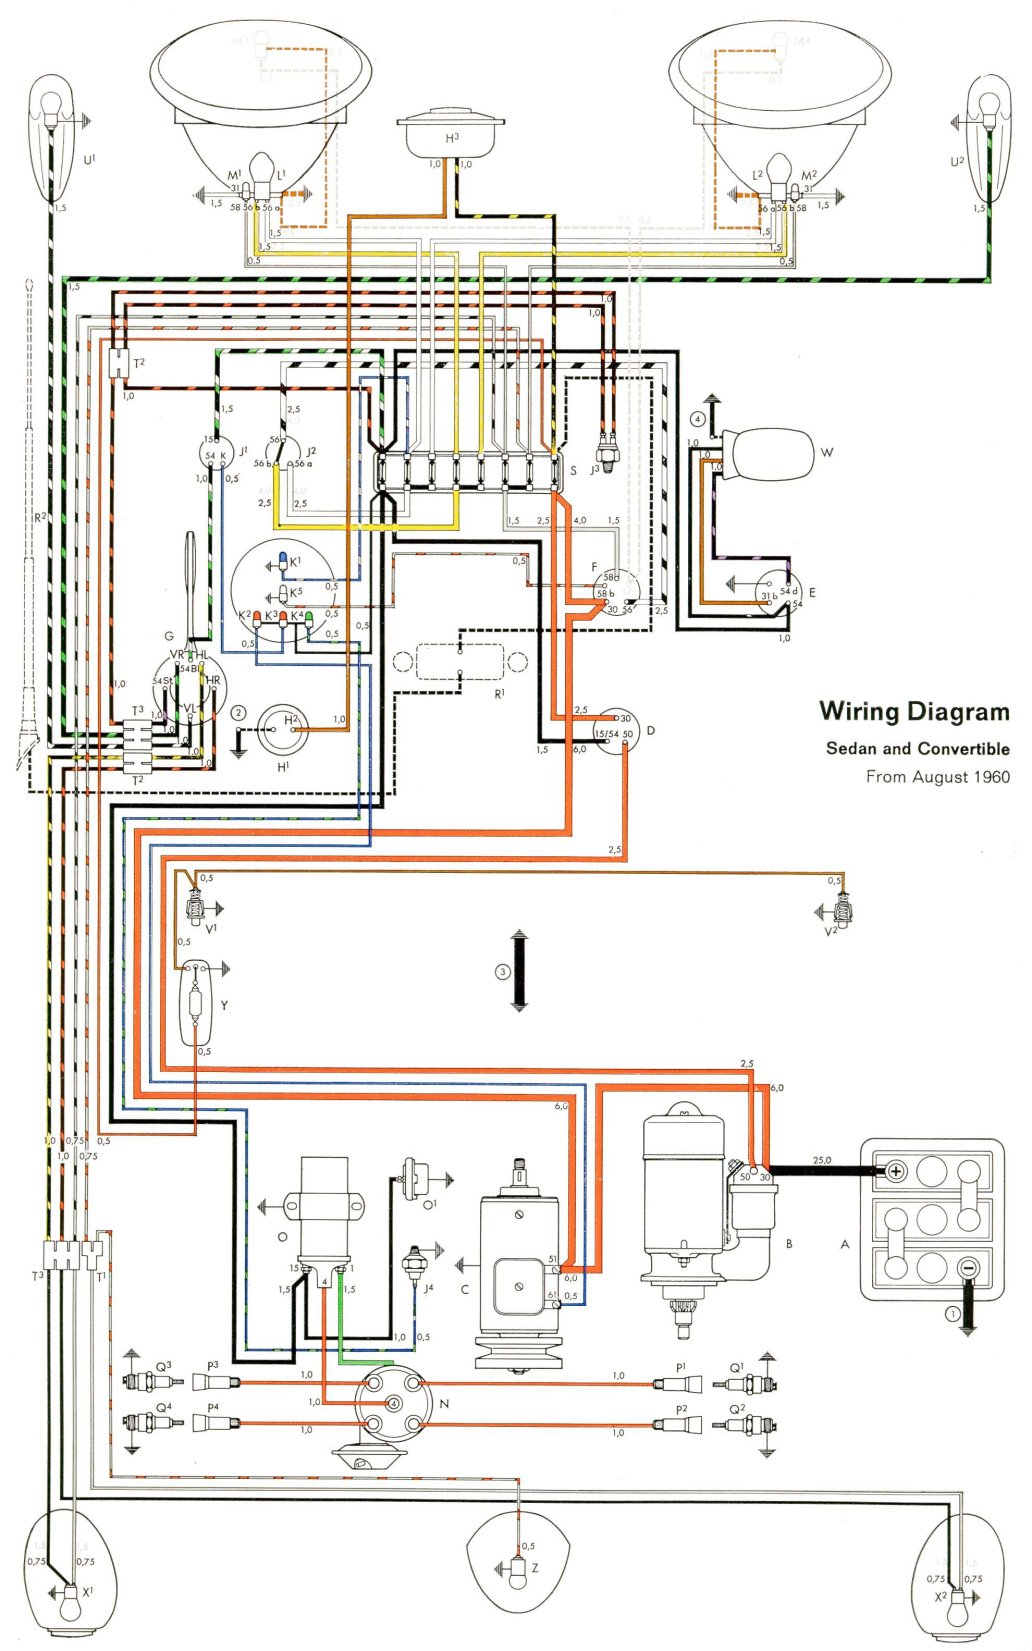 bug_61 1961 beetle wiring diagram thegoldenbug com 1973 vw wiring diagram at reclaimingppi.co